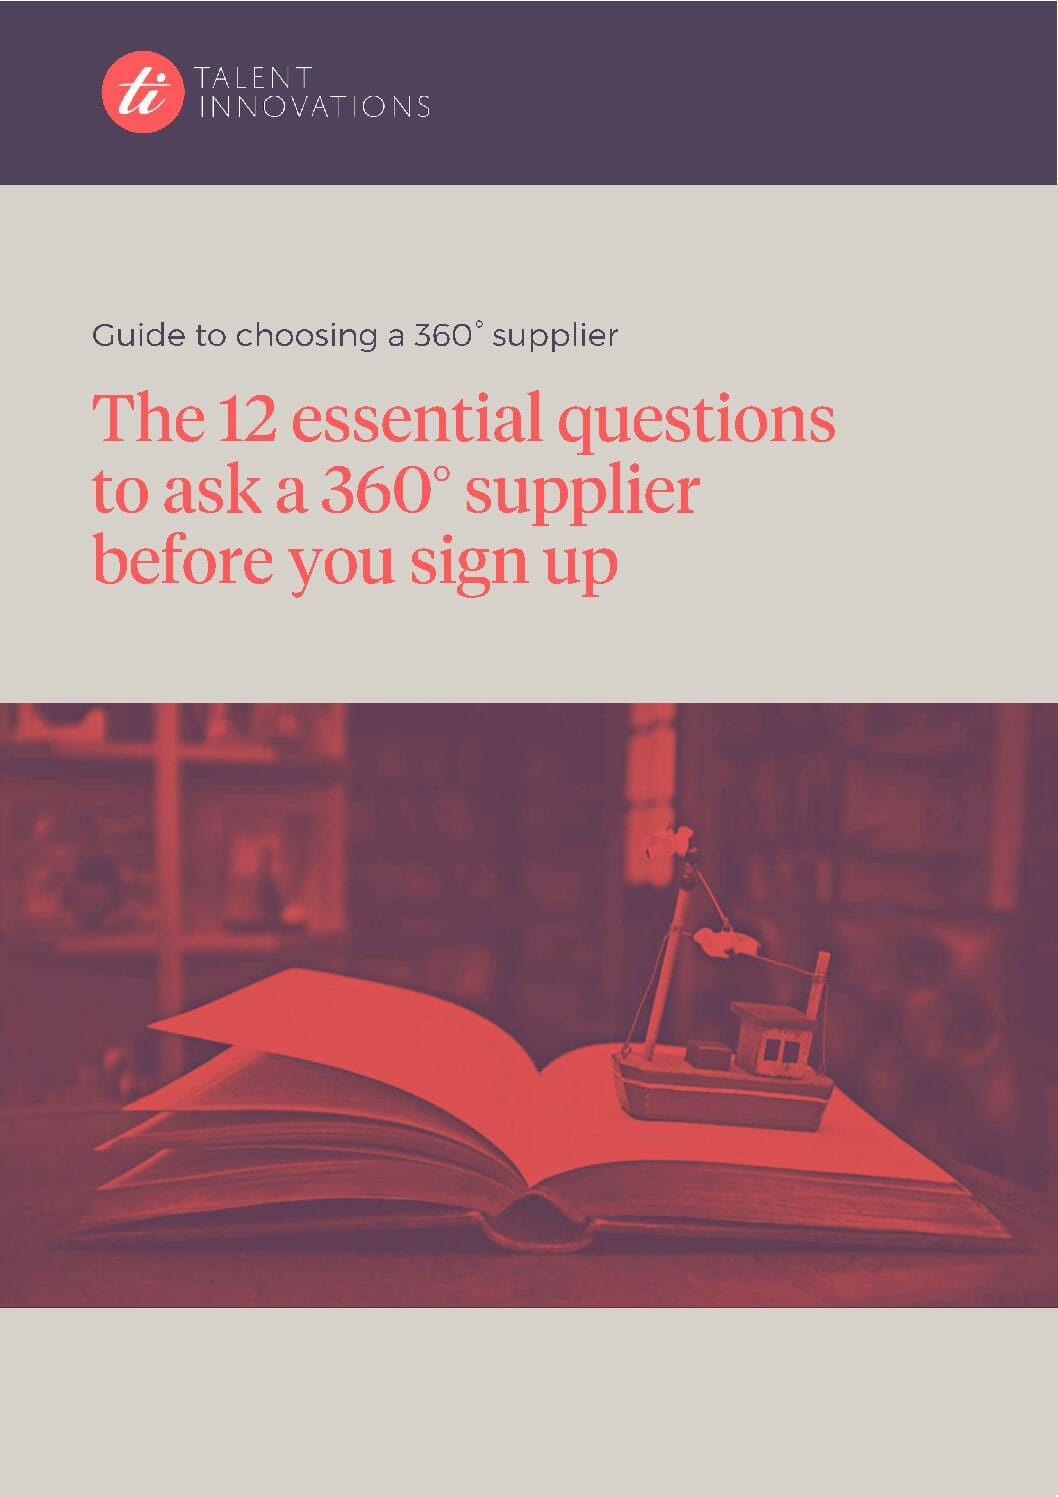 The 12 essential questions to ask a supplier before you sign up